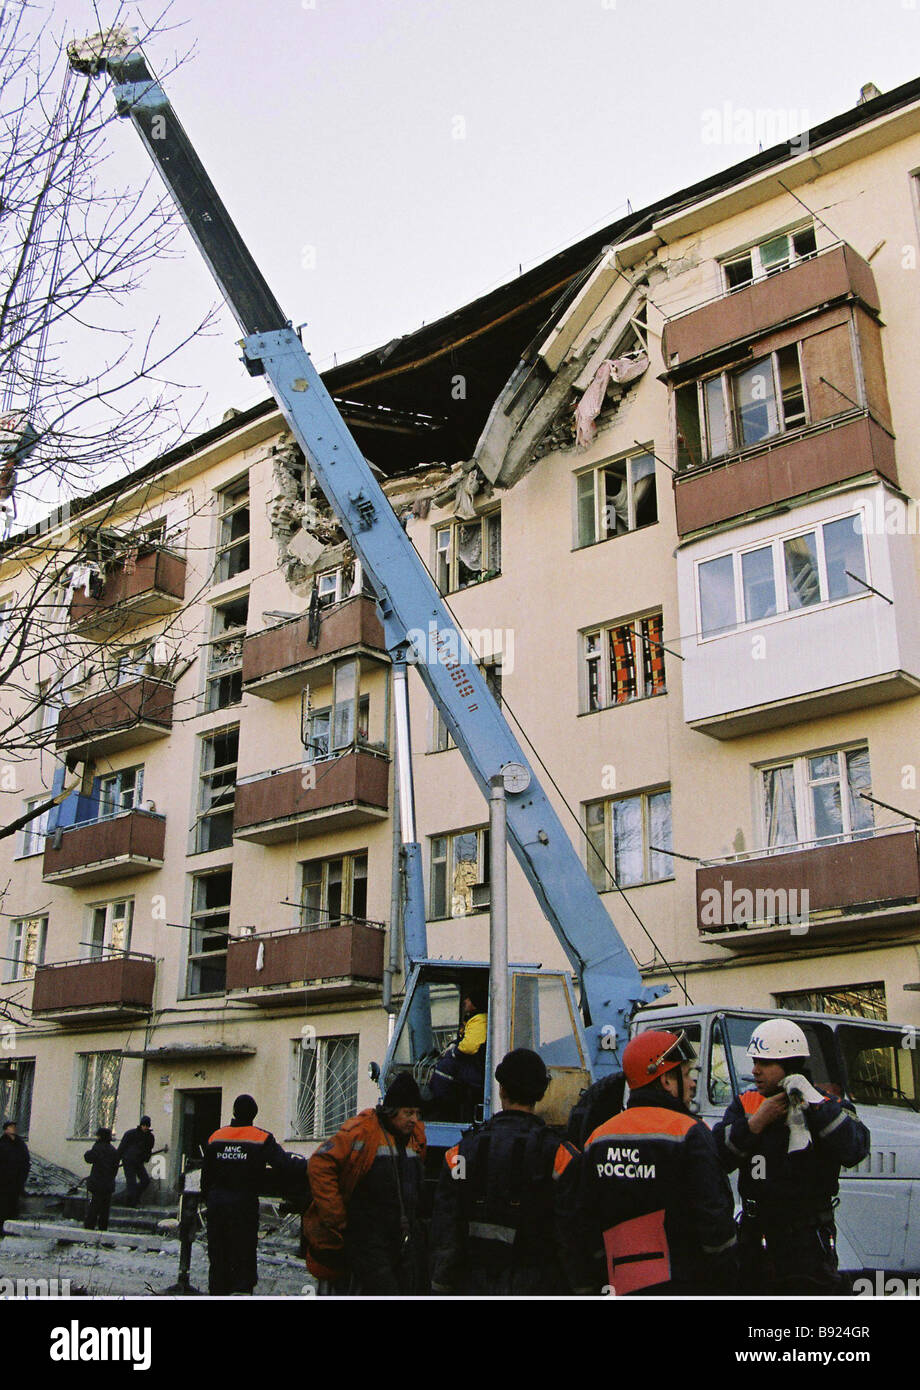 Six people were killed in an explosion in an apartment building in Zheleznovodsk Stavropol Region - Stock Image